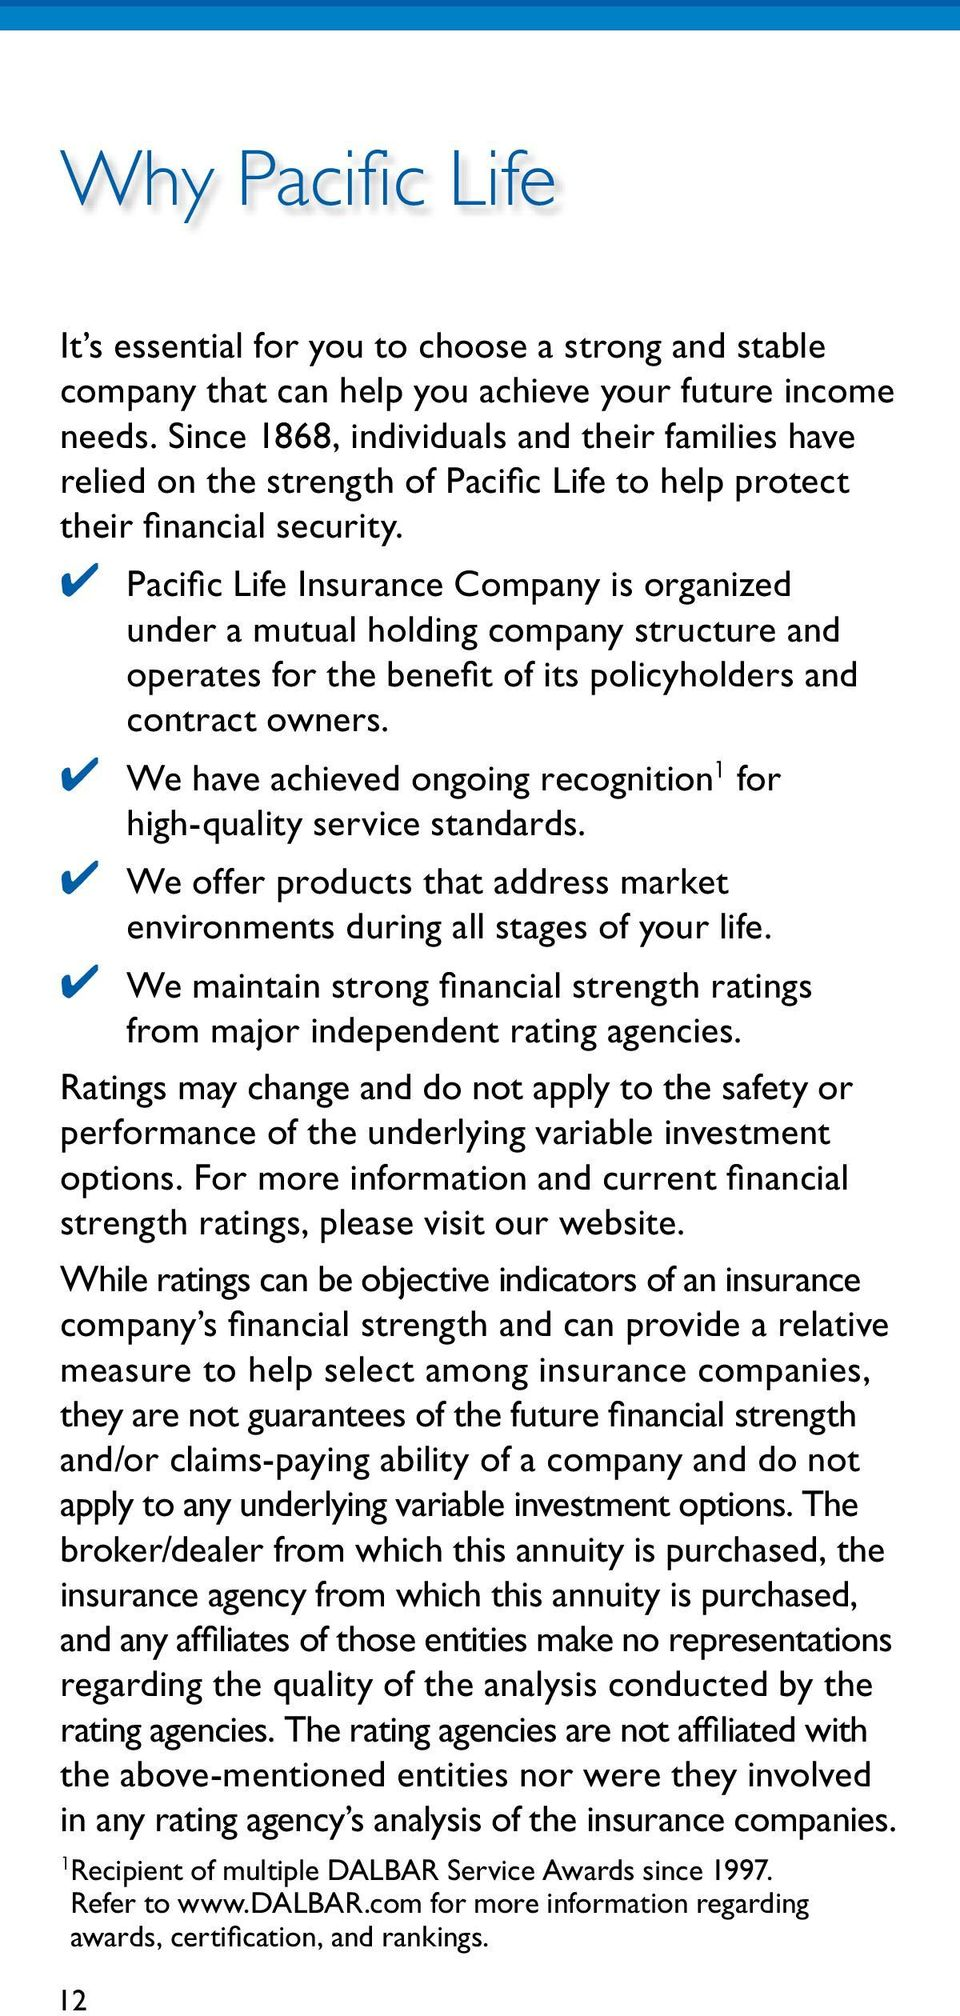 Pacific Life Insurance Company is organized under a mutual holding company structure and operates for the benefit of its policyholders and contract owners.